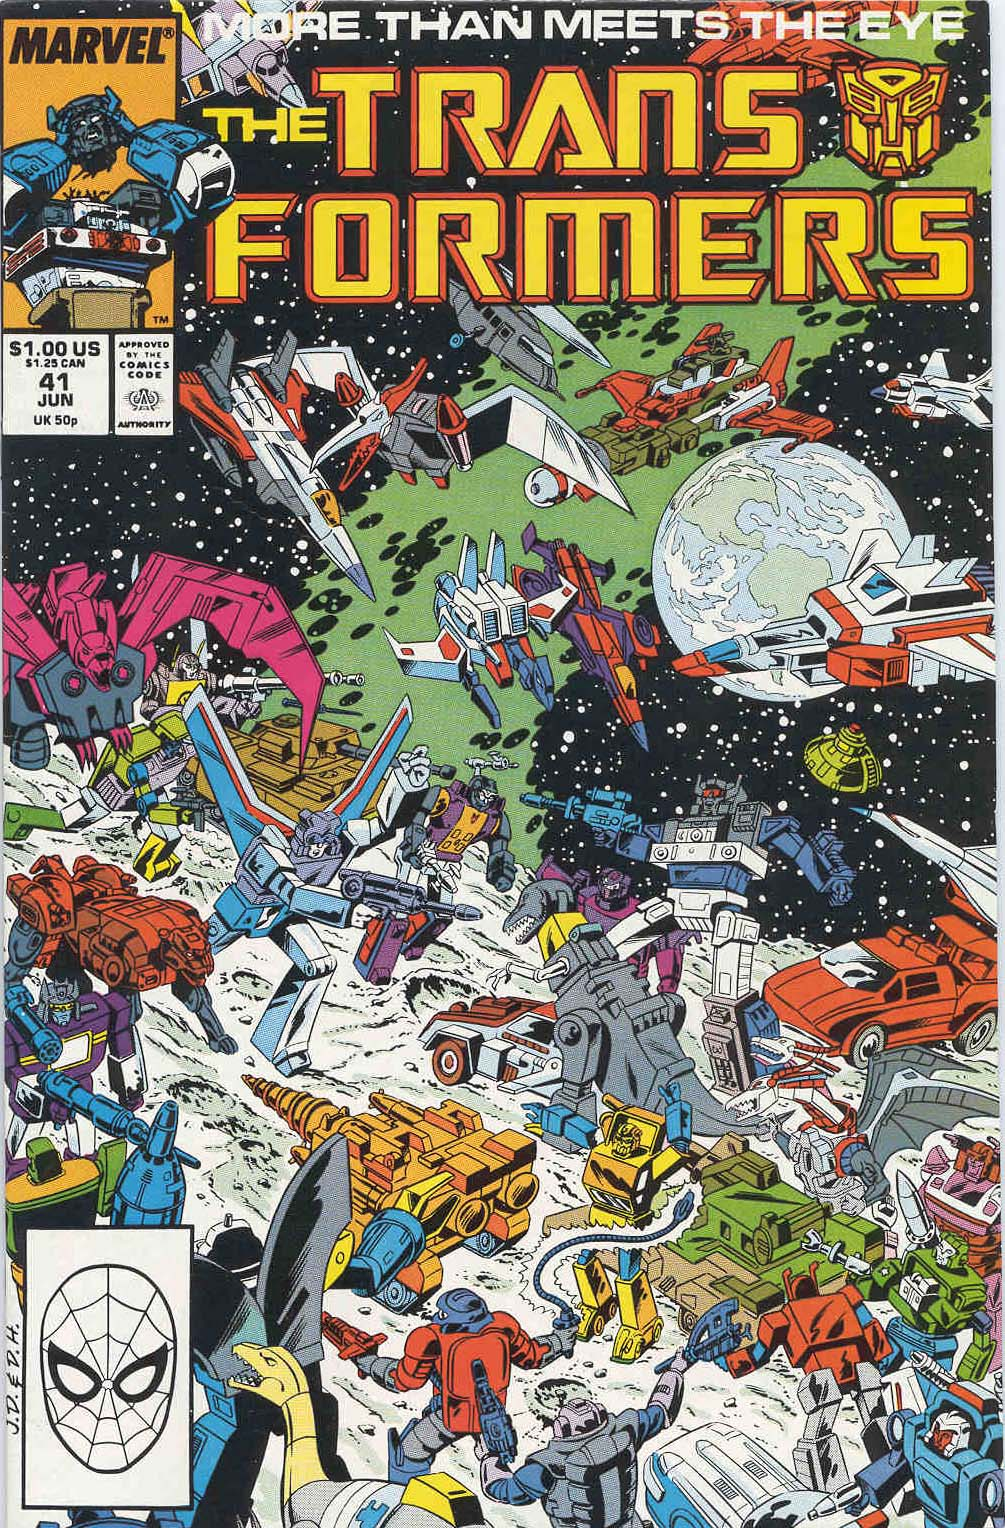 The Transformers (1984) #41, cover penciled by Jose Delbo & inked by Dave Hunt.